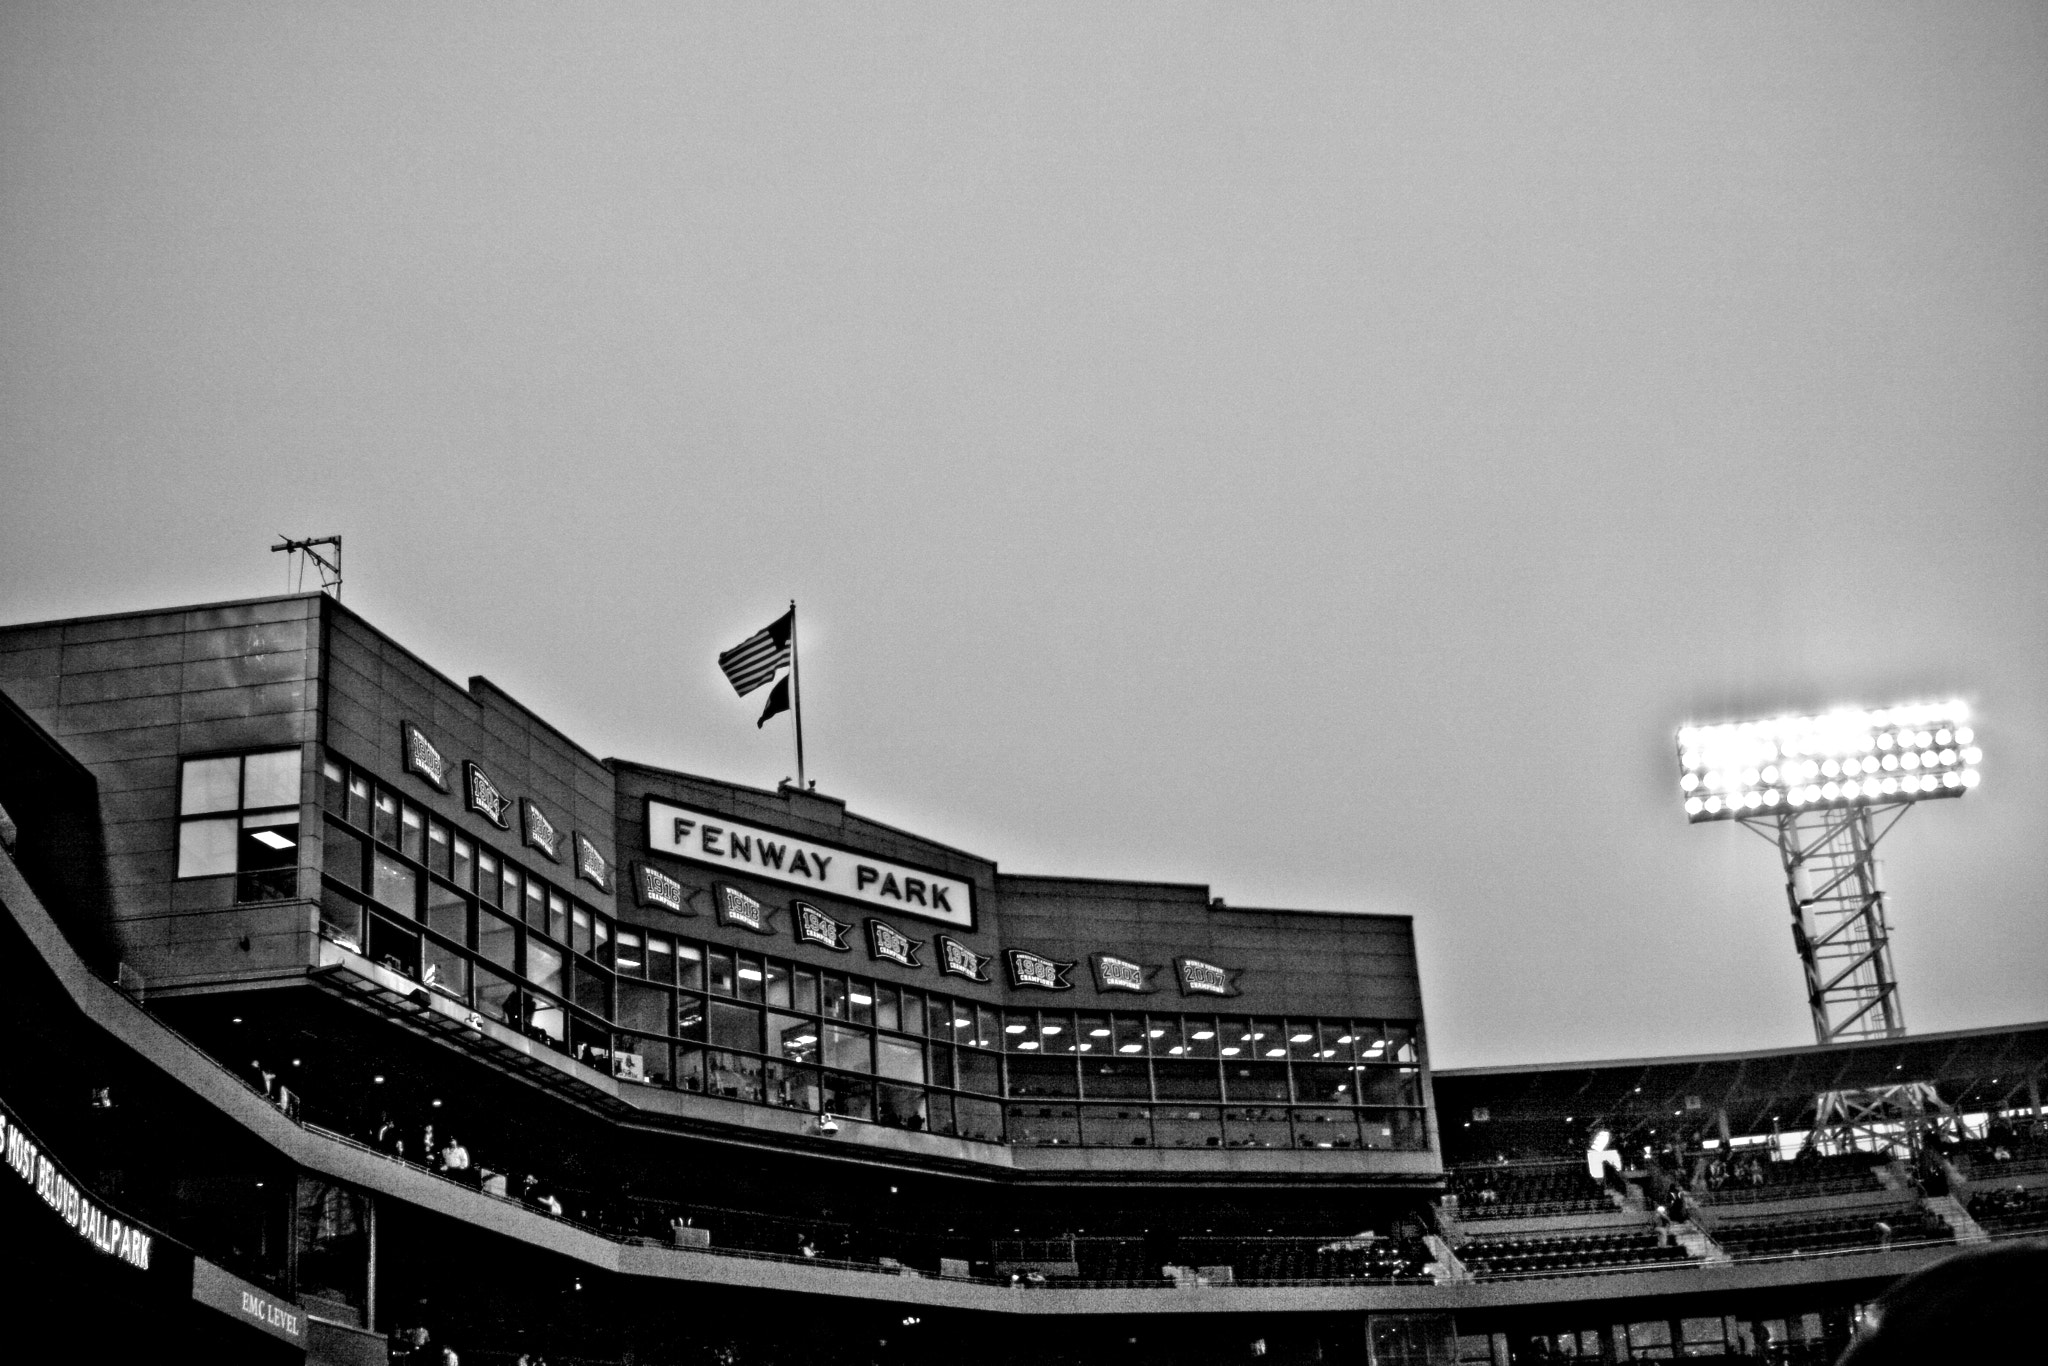 Photograph Fenway Park by Tara Kate on 500px